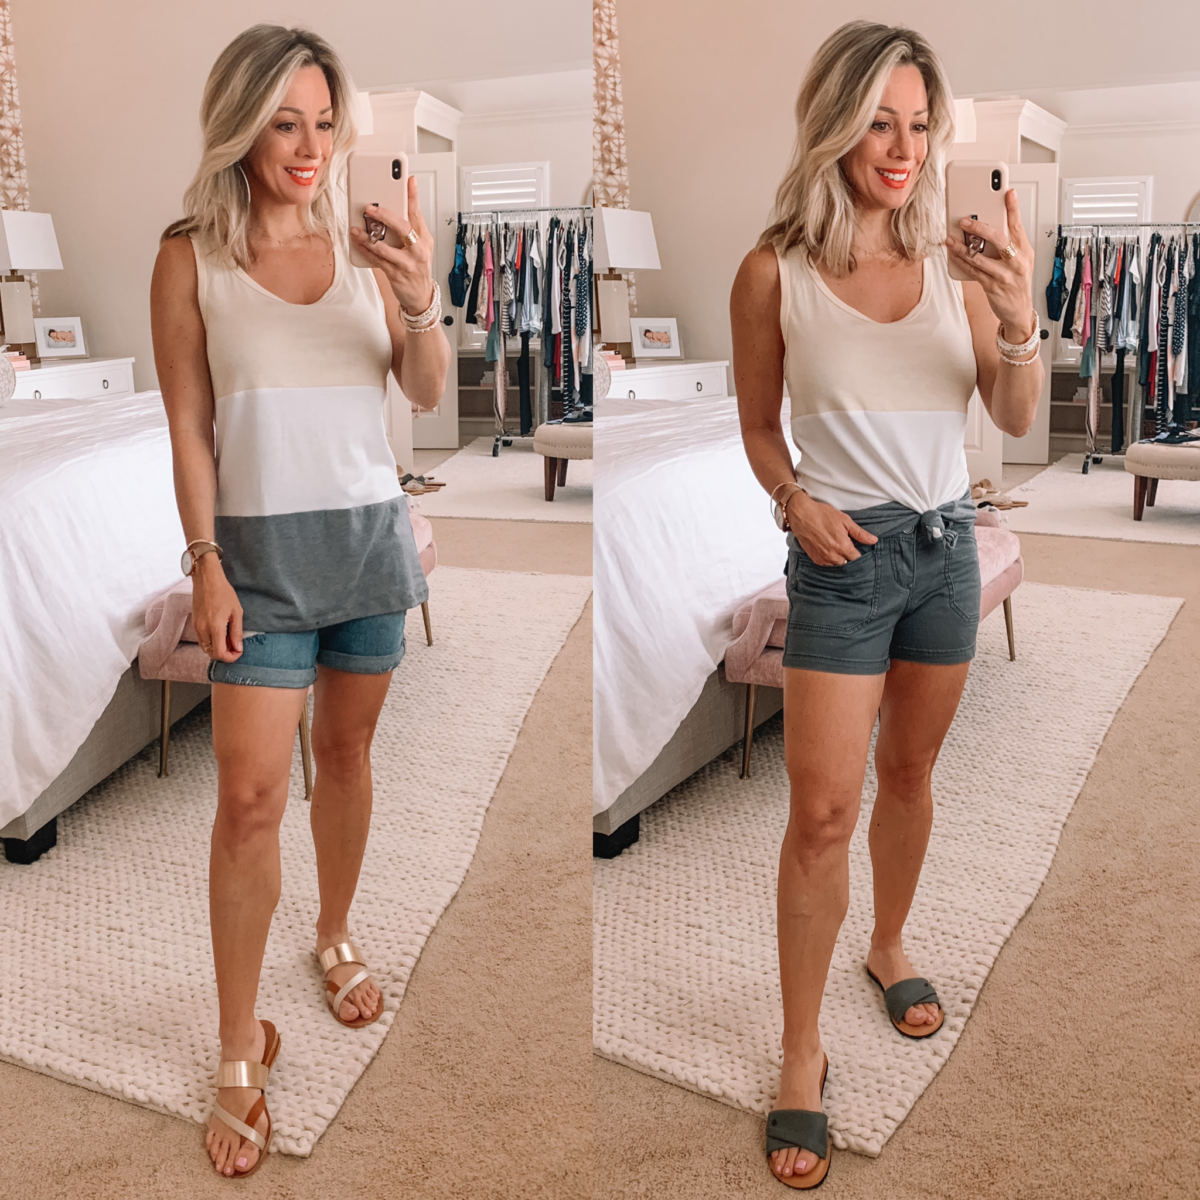 Amazon Fashion Finds, Colorblock Tank, Denim Shorts, Board Shorts, Strappy Sandals, Slide Sandals